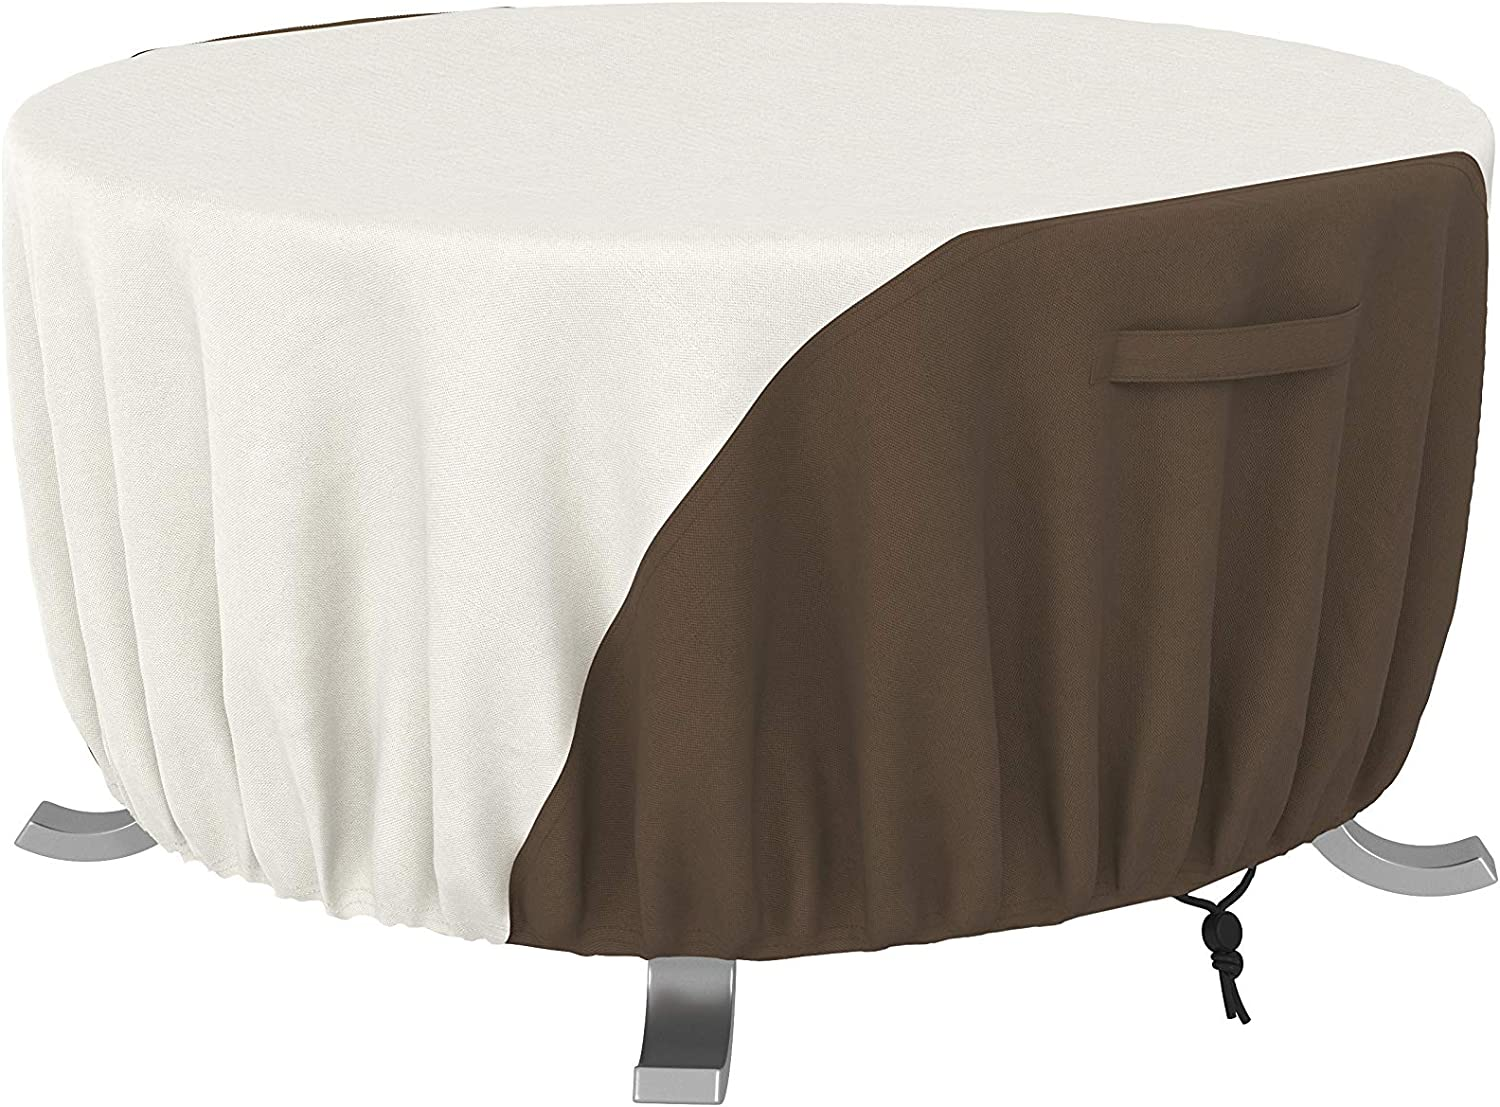 Amazon Basics Outdoor Round Max 80% OFF Patio Cover inch 60 Super Special SALE held Fire Pit